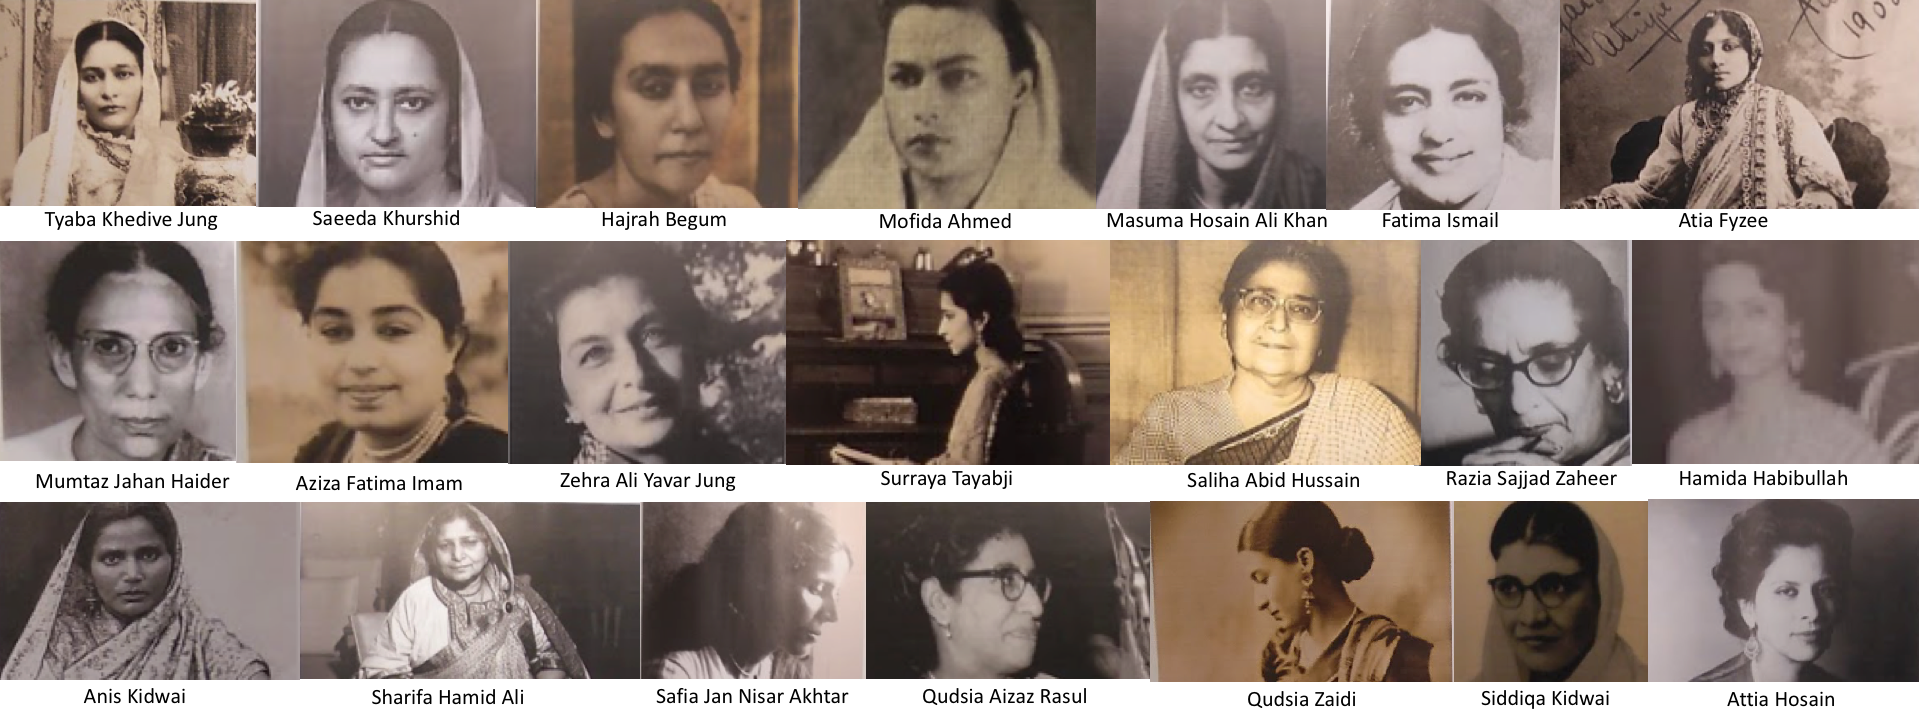 Paying Tribute to Pathbreaking, and Forgotten, Muslim Women from the 20th Century